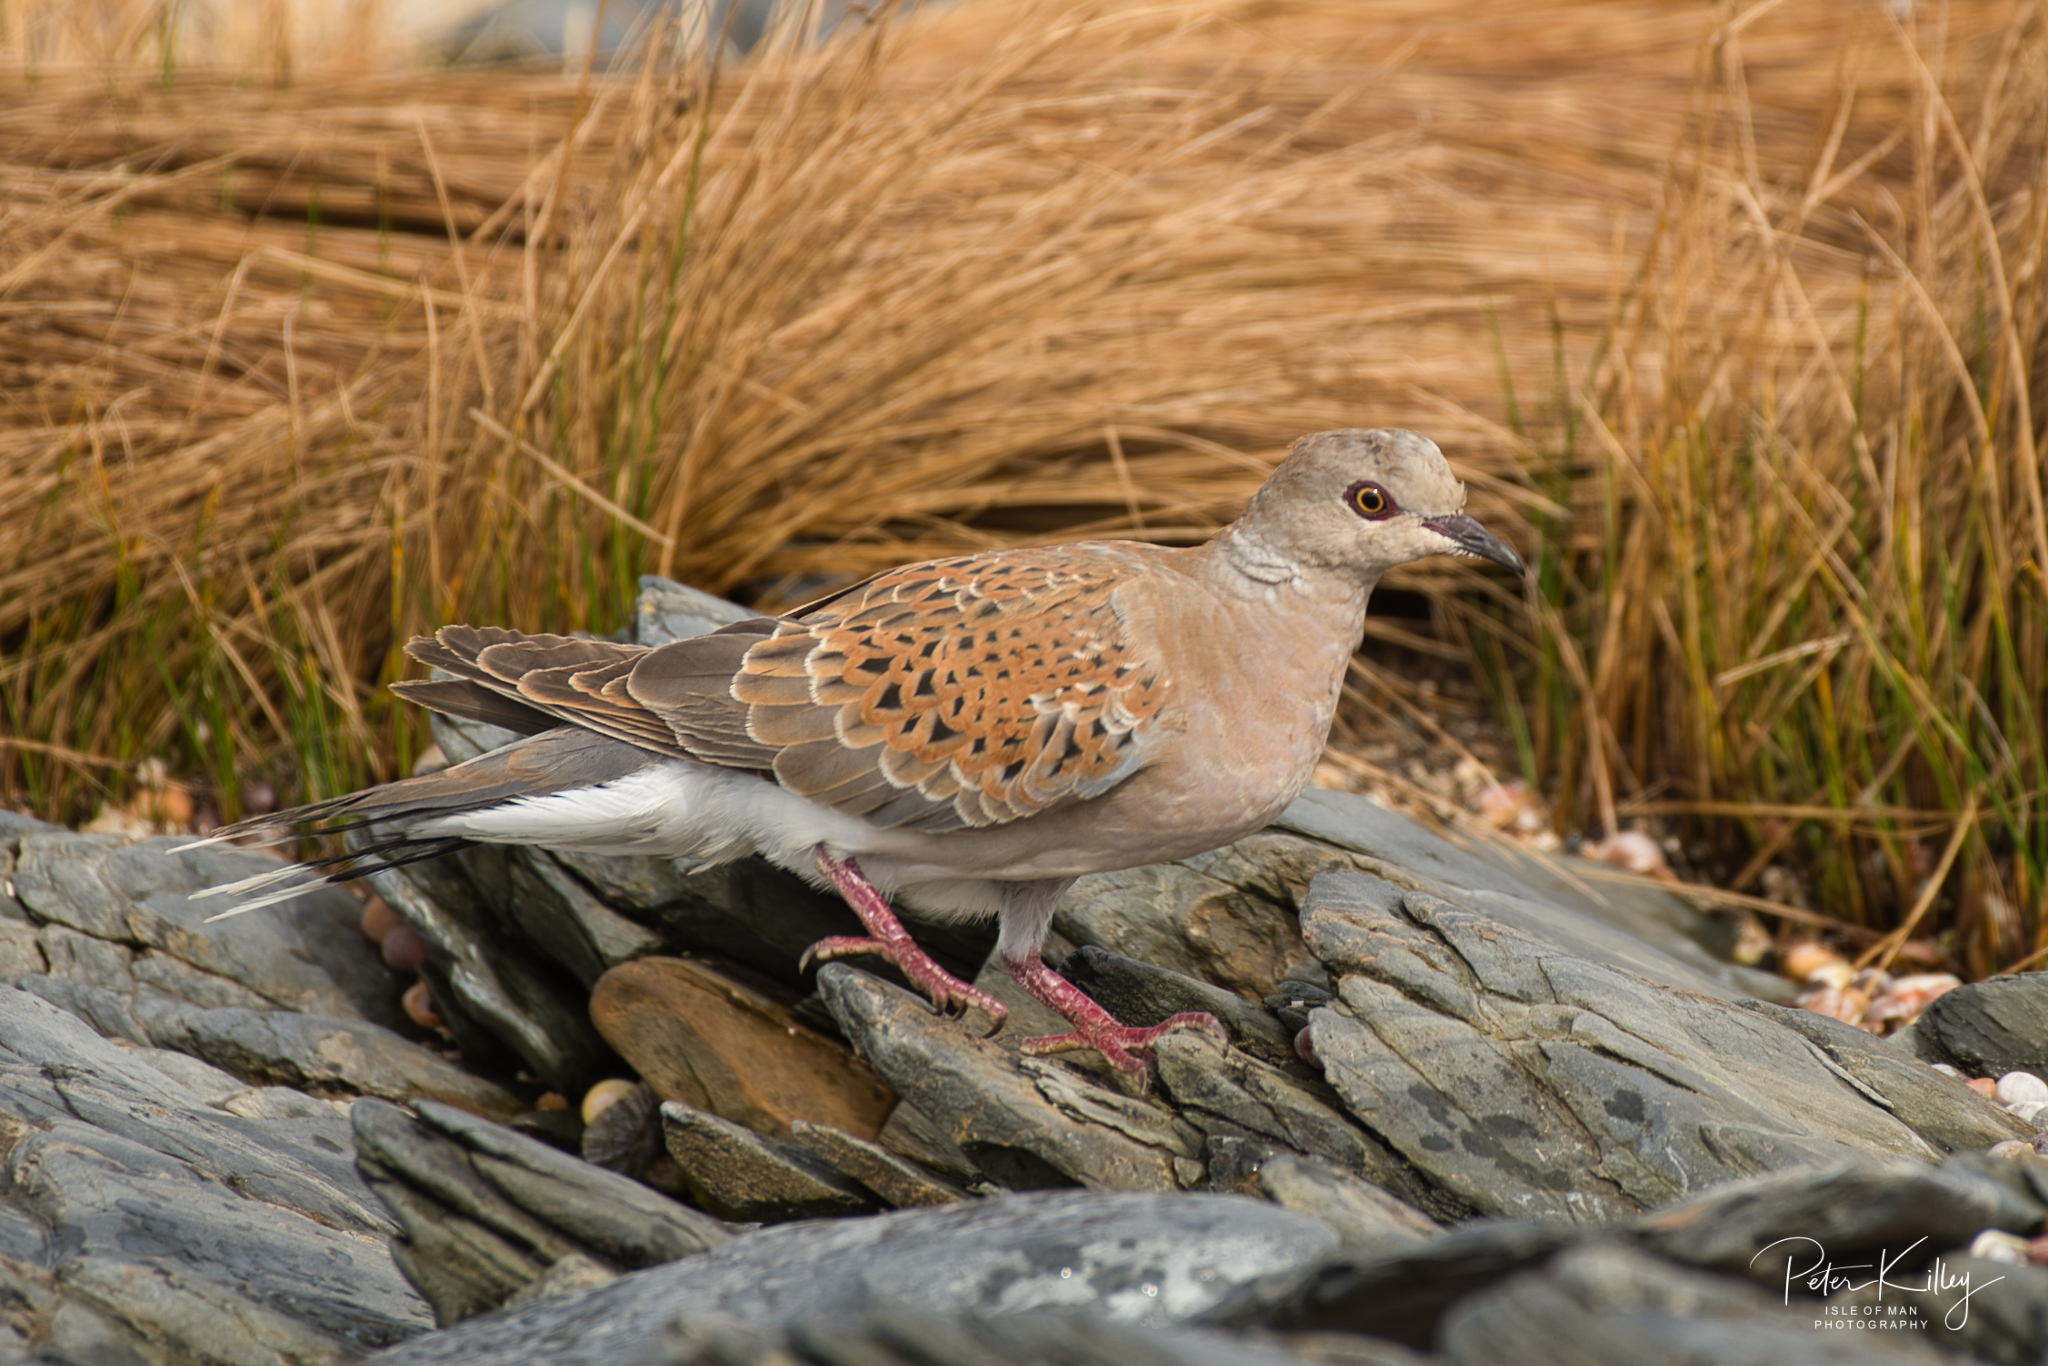 Turtle Dove, Isle of Man - © Peter Killey - www.manxscenes.com